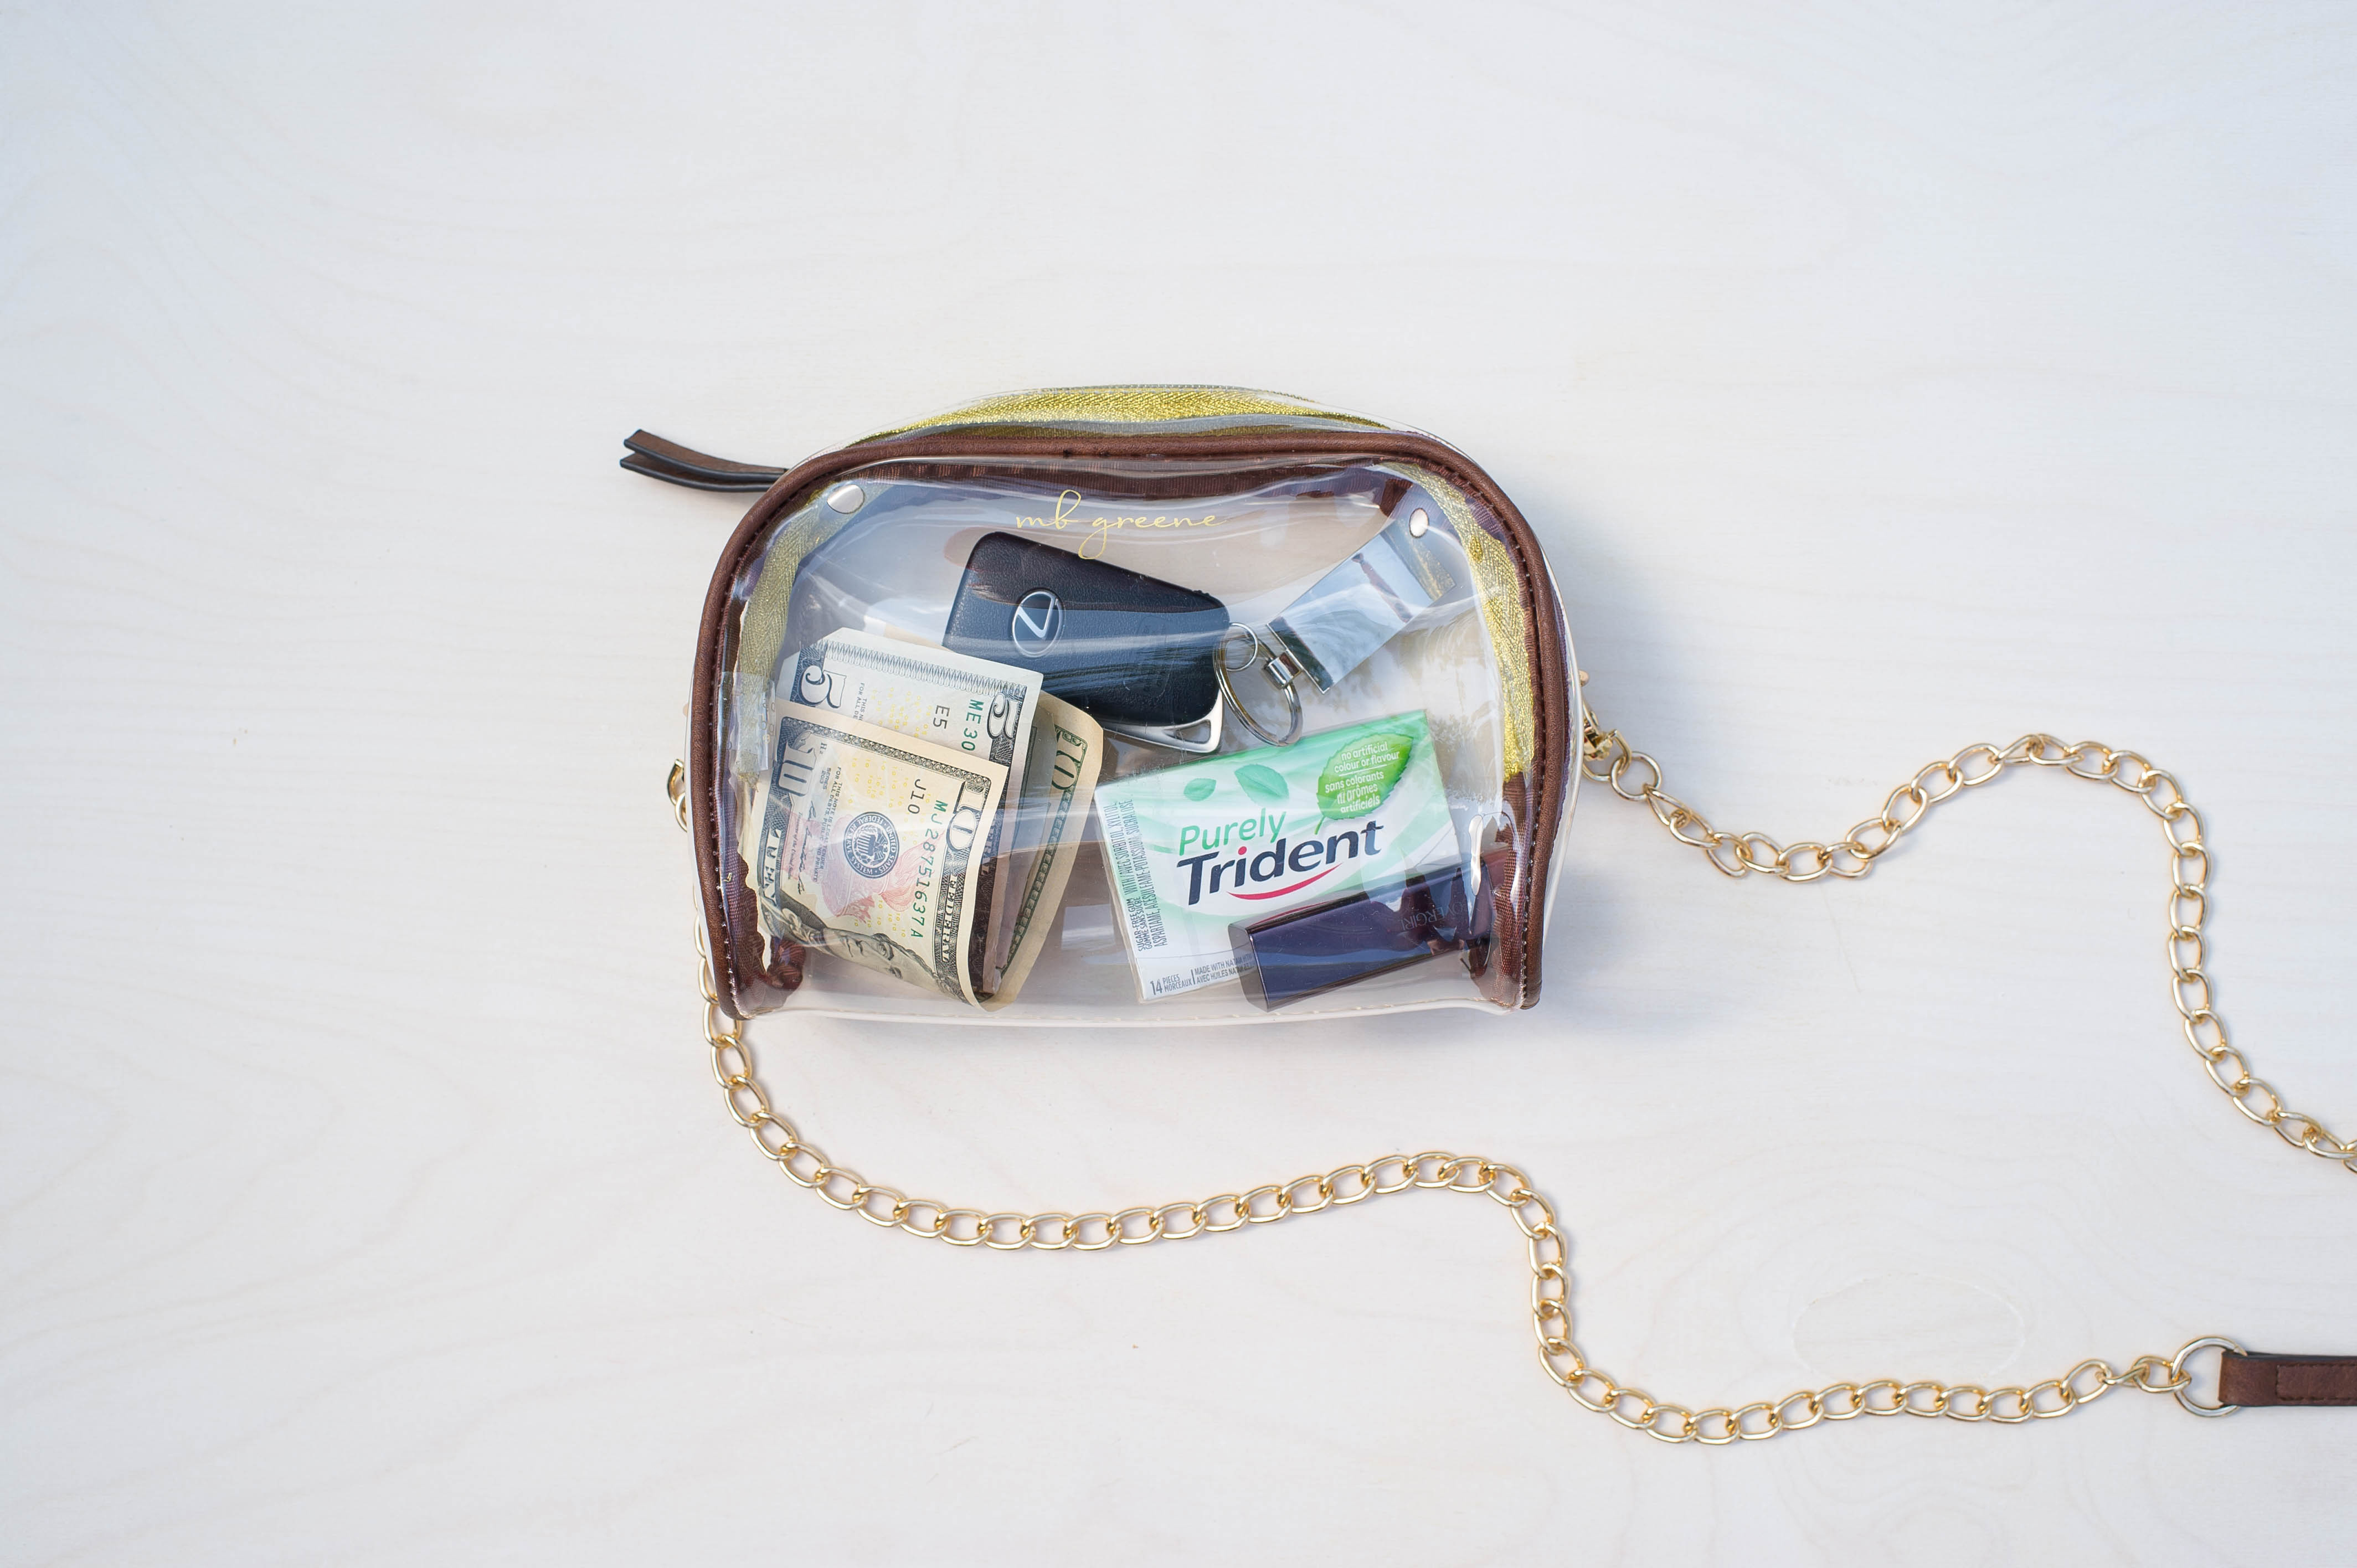 b741cd6e48 MB Greene Clear Stadium Approved Large Purse Crossbody Bag Chain Sporting  Events